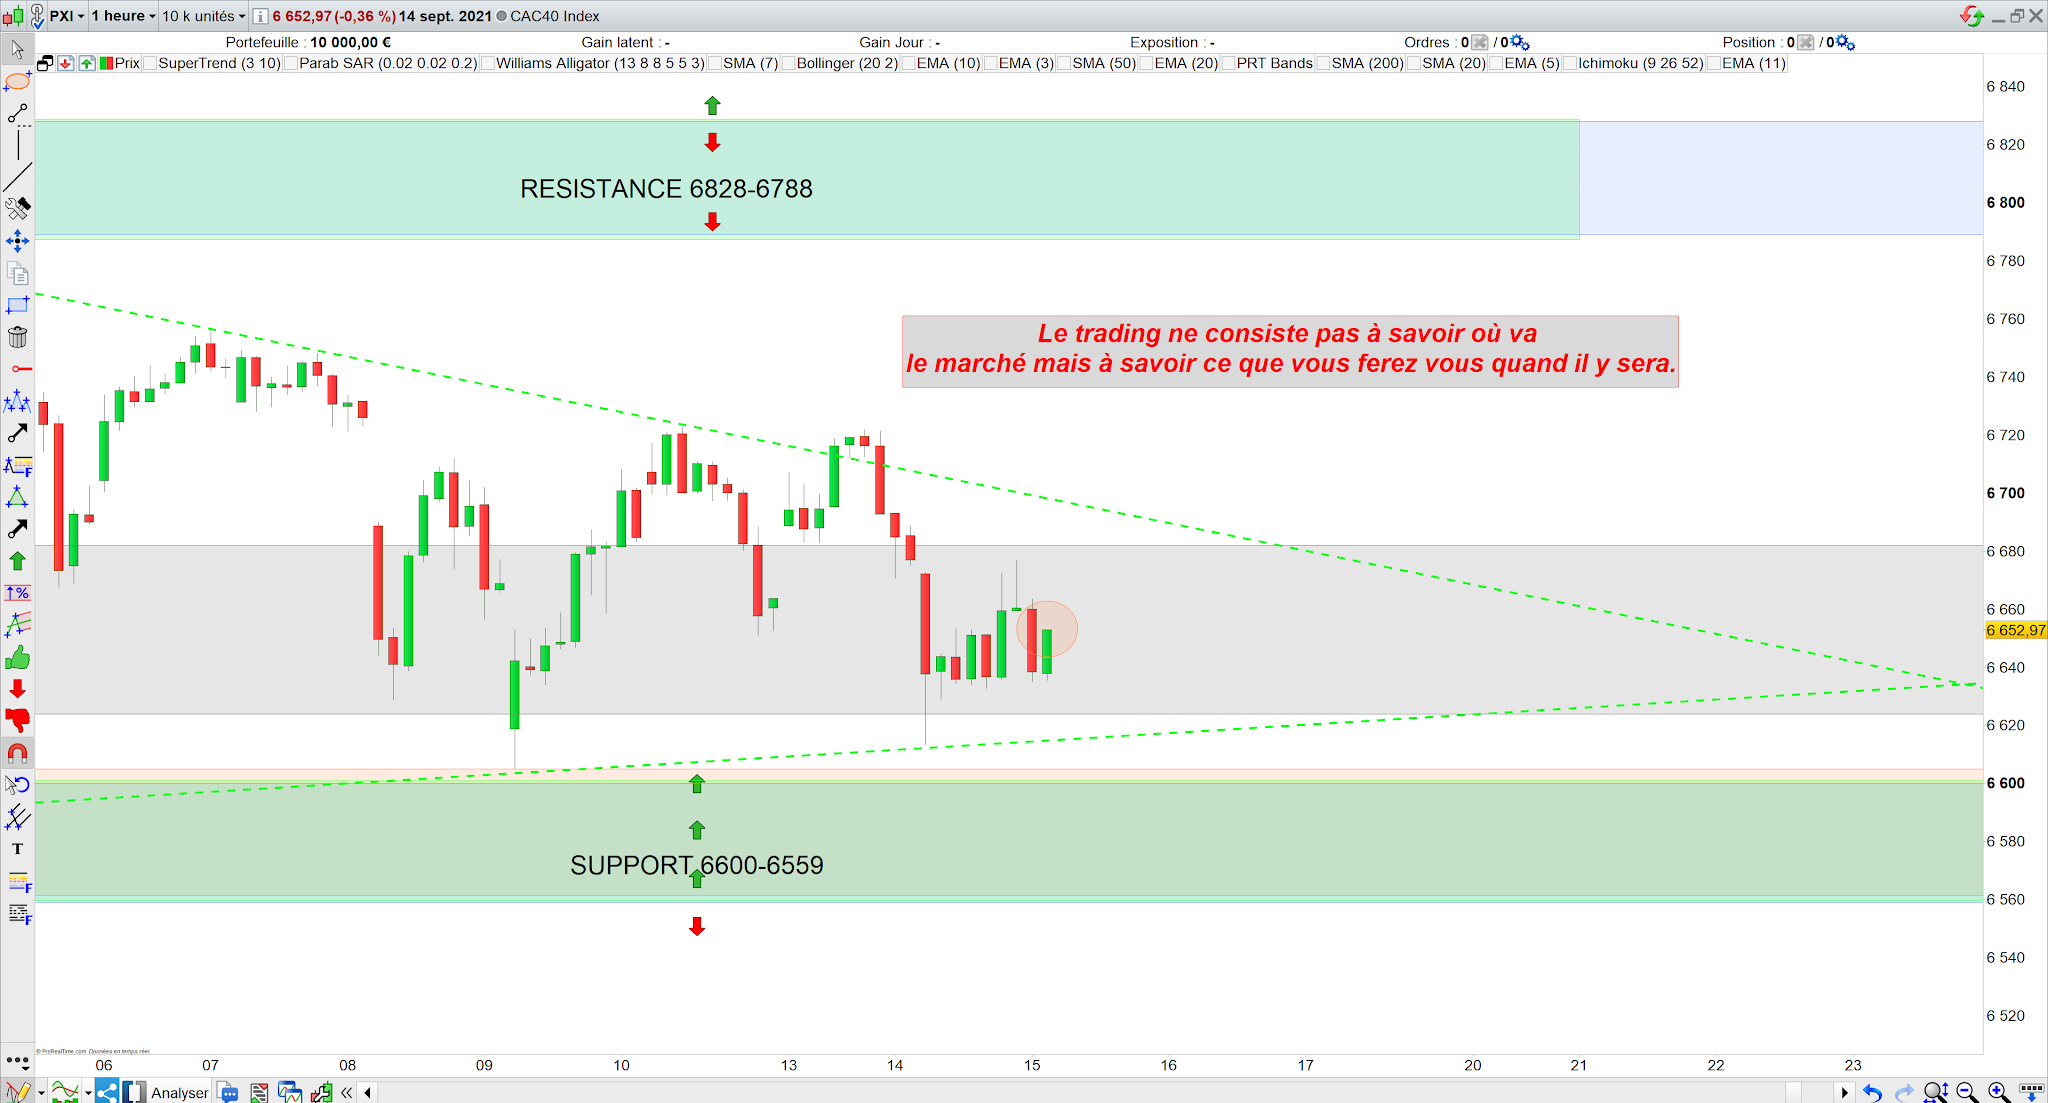 Trading cac40 15/09/21